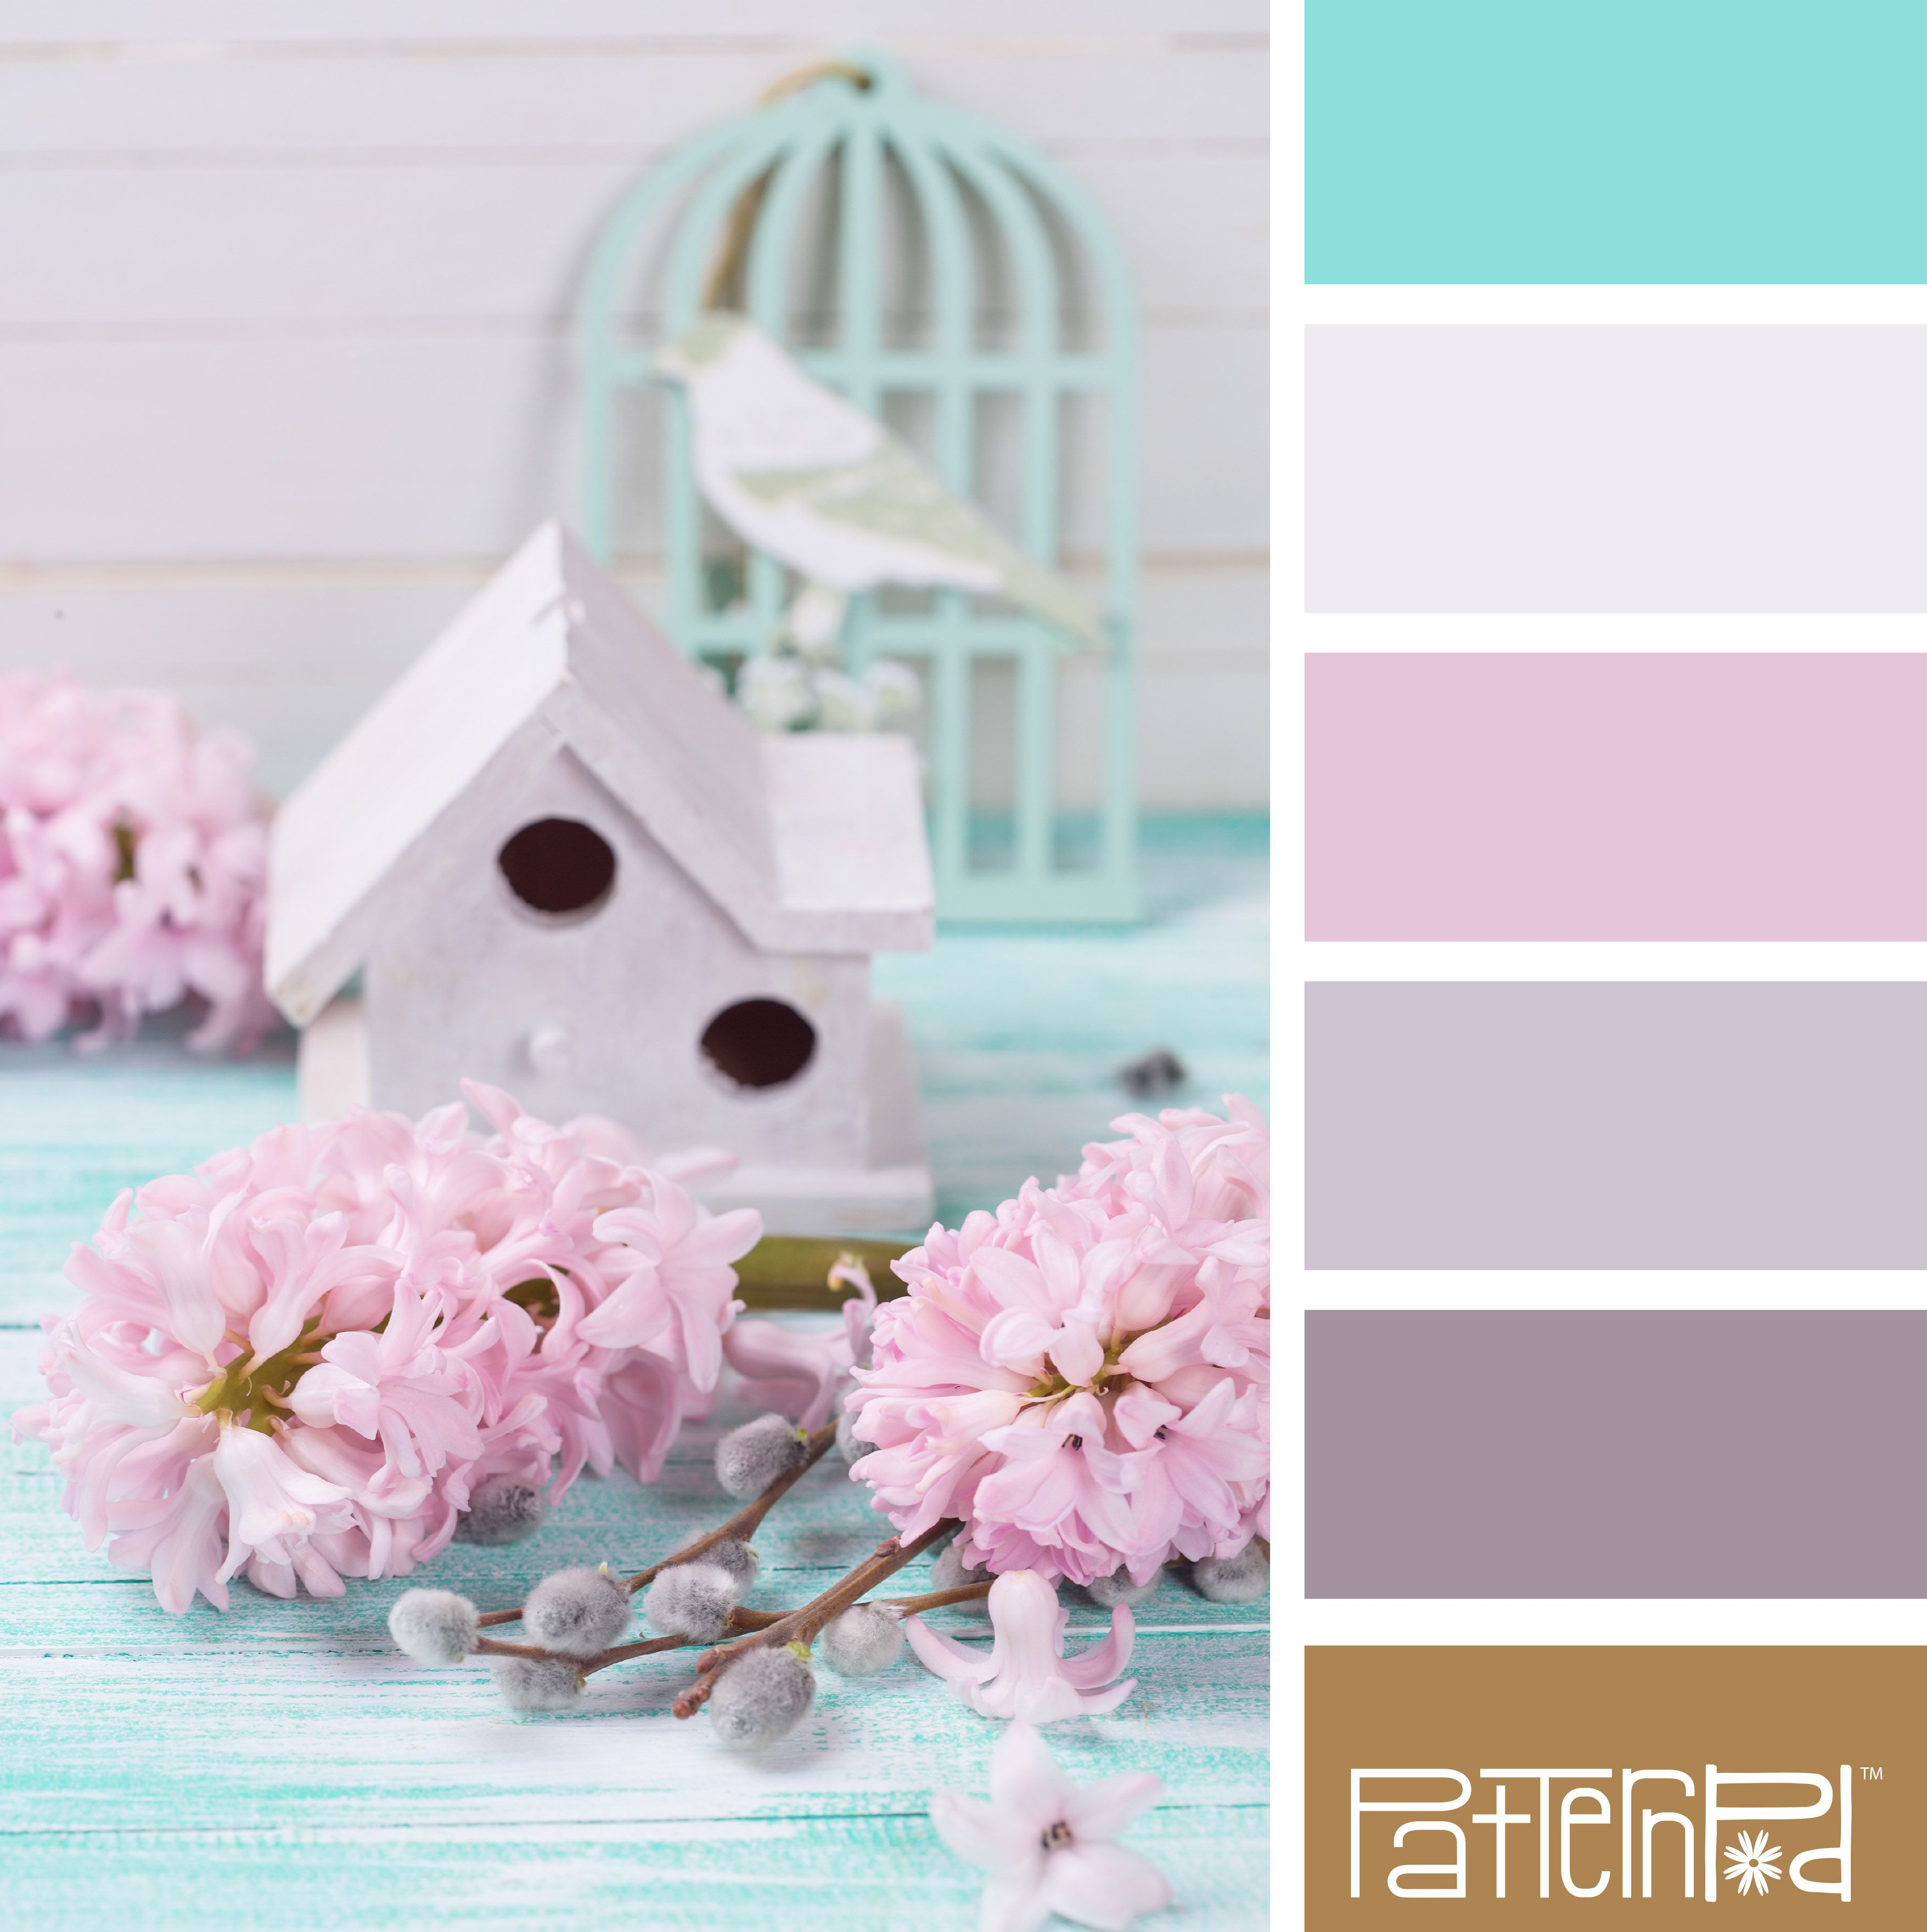 Color Palette: Teal, Lavender, and Gold. If you like our color inspiration, sign up for our monthly trend letter here - http://patternpod.us4.list-manage.com/subscribe?u=524b0f0b9b67105d05d0db16a&id=f8d394f1bb&utm_content=buffer847d9&utm_medium=social&utm_source=pinterest.com&utm_campaign=buffer